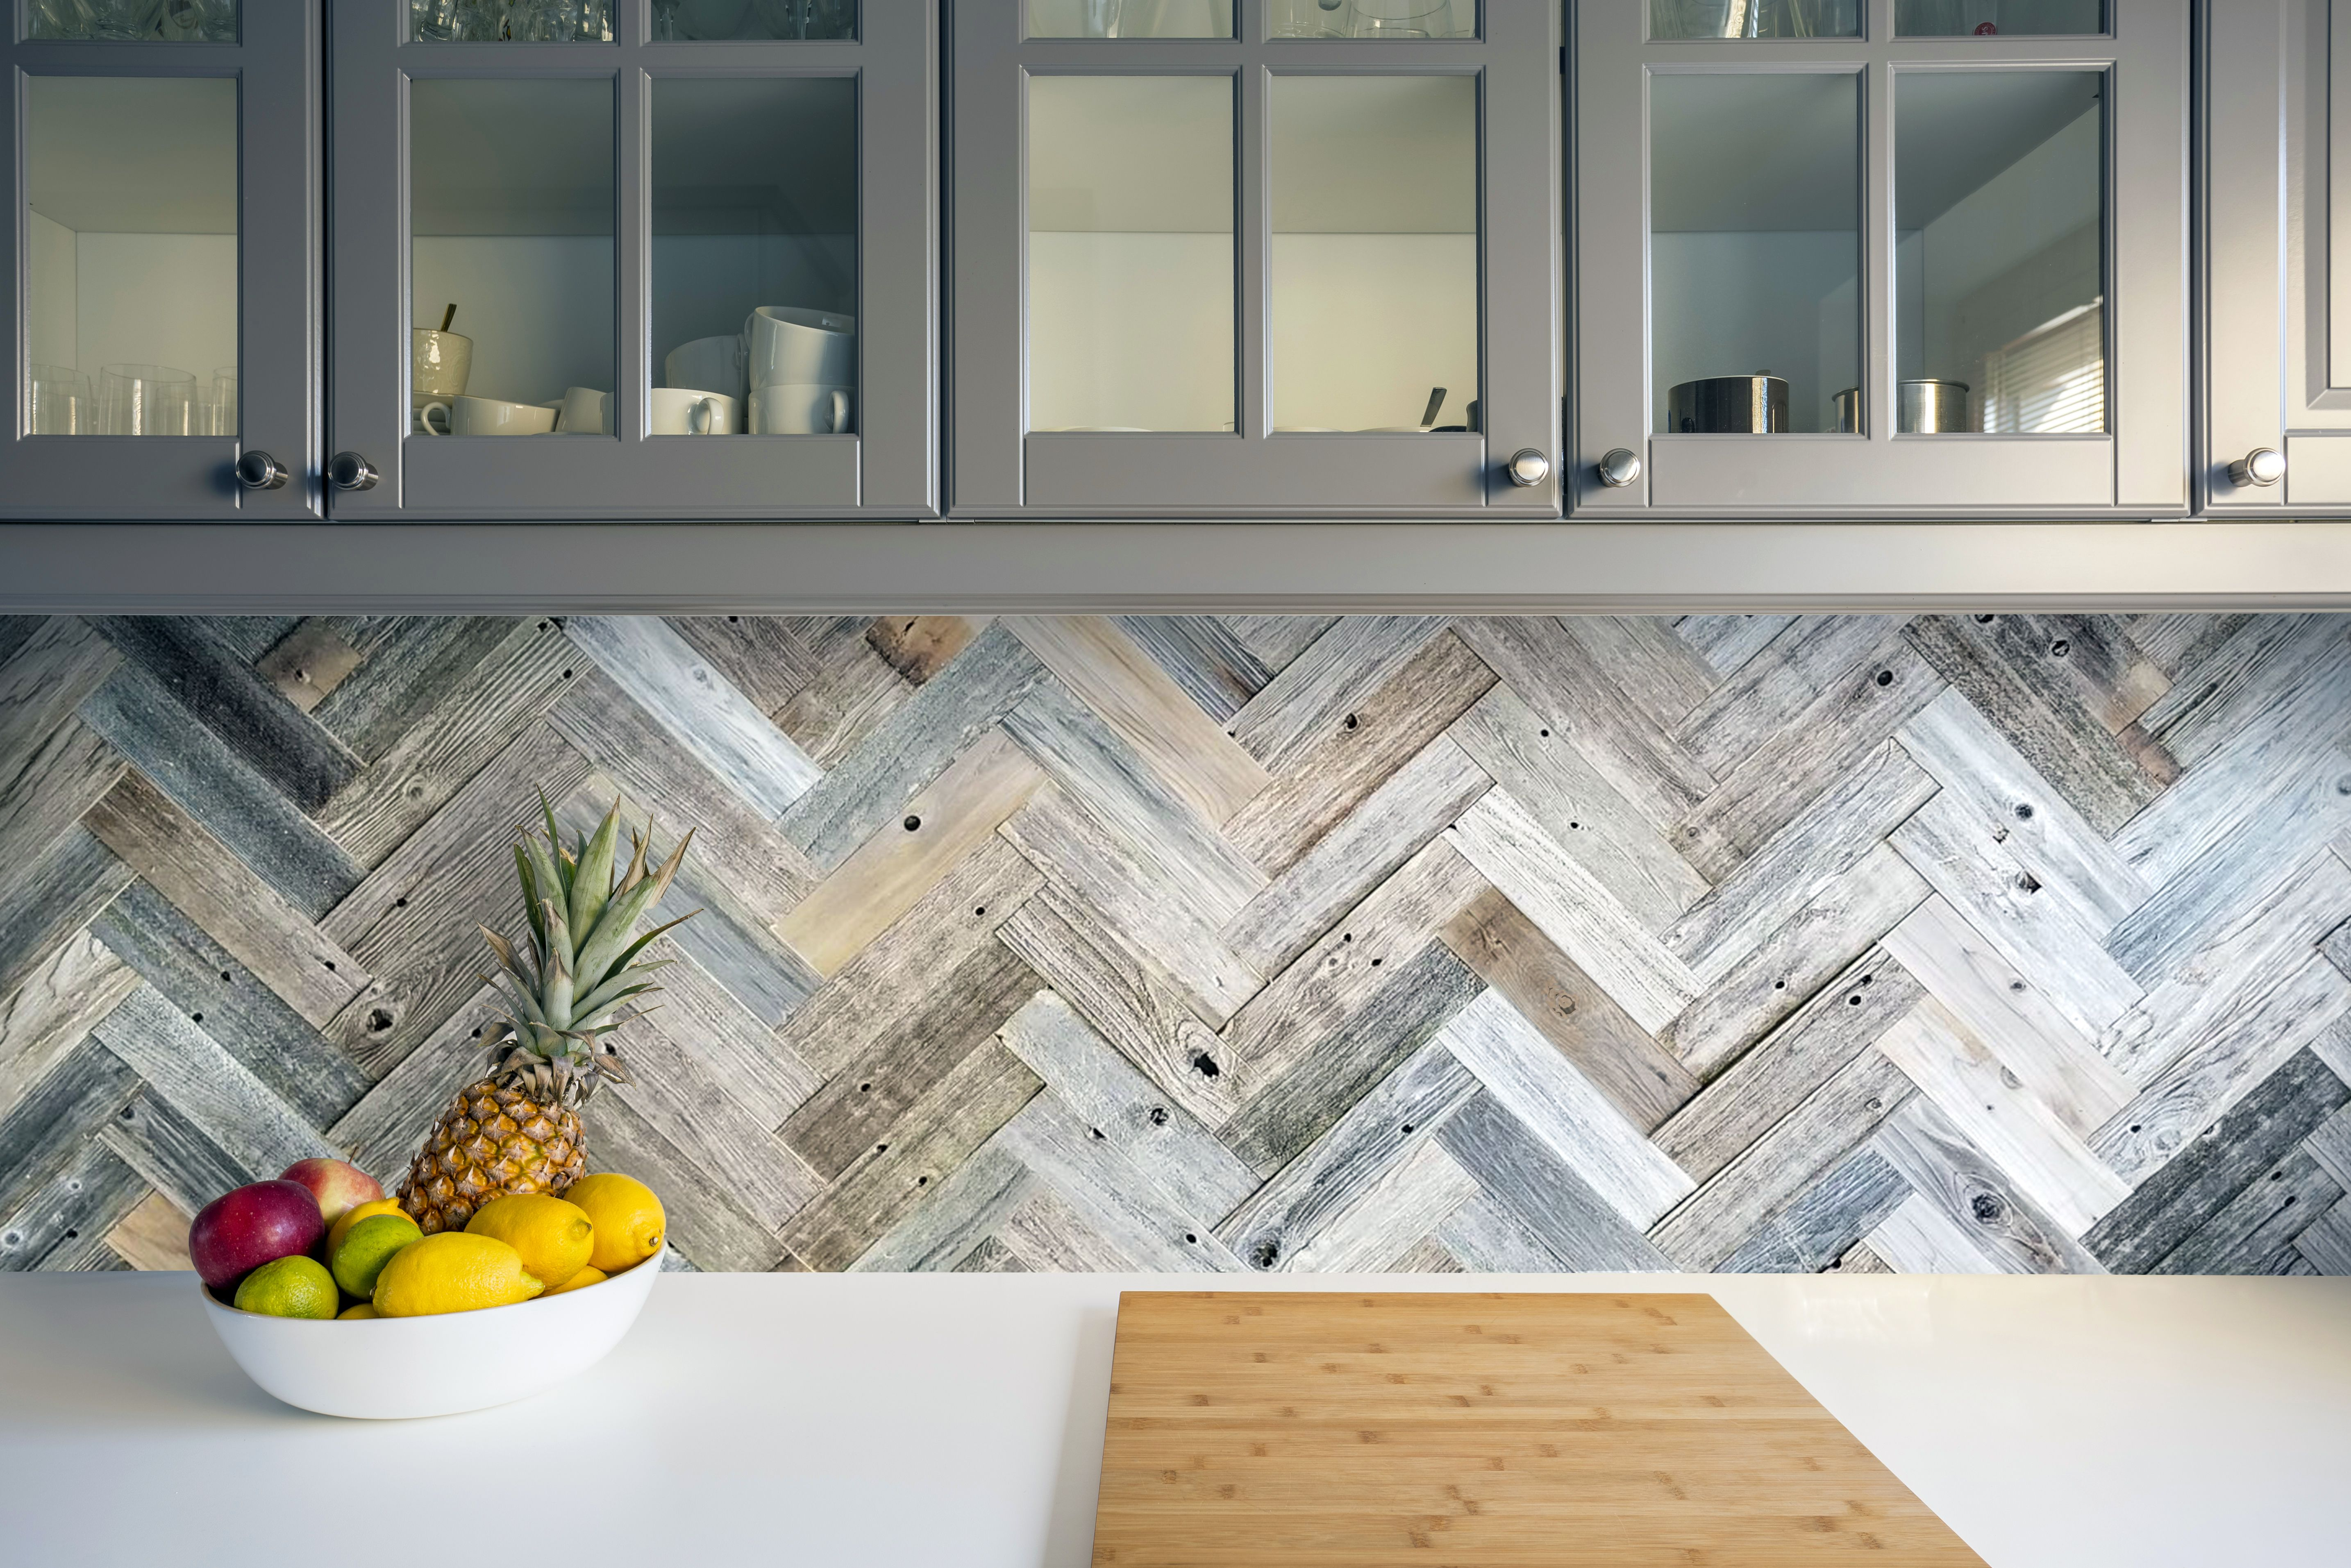 Fireplace Backsplash Beautiful Herringbone Backsplash Using Peel and Stick Barn Wood